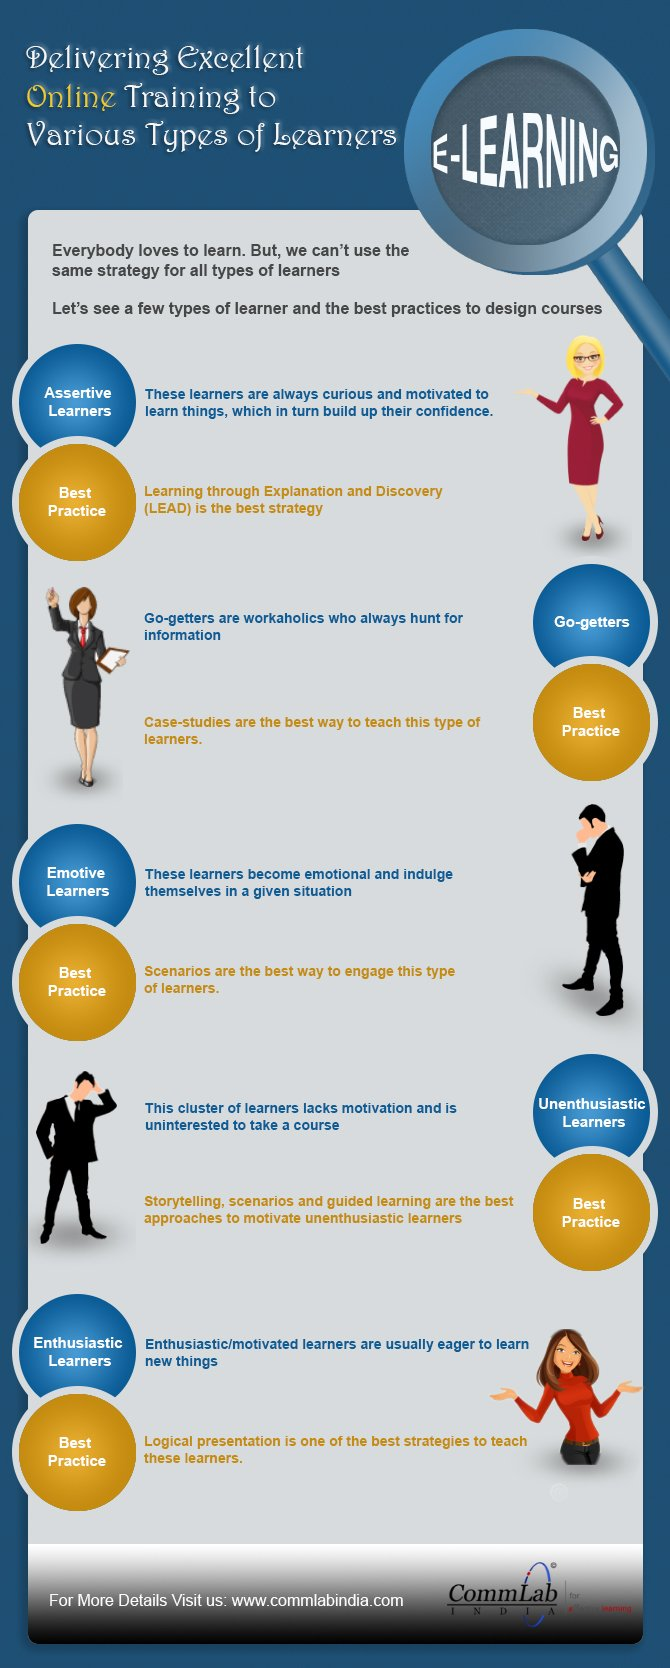 Delivering Excellent Online Training to Various Types of Learners - An Infographic